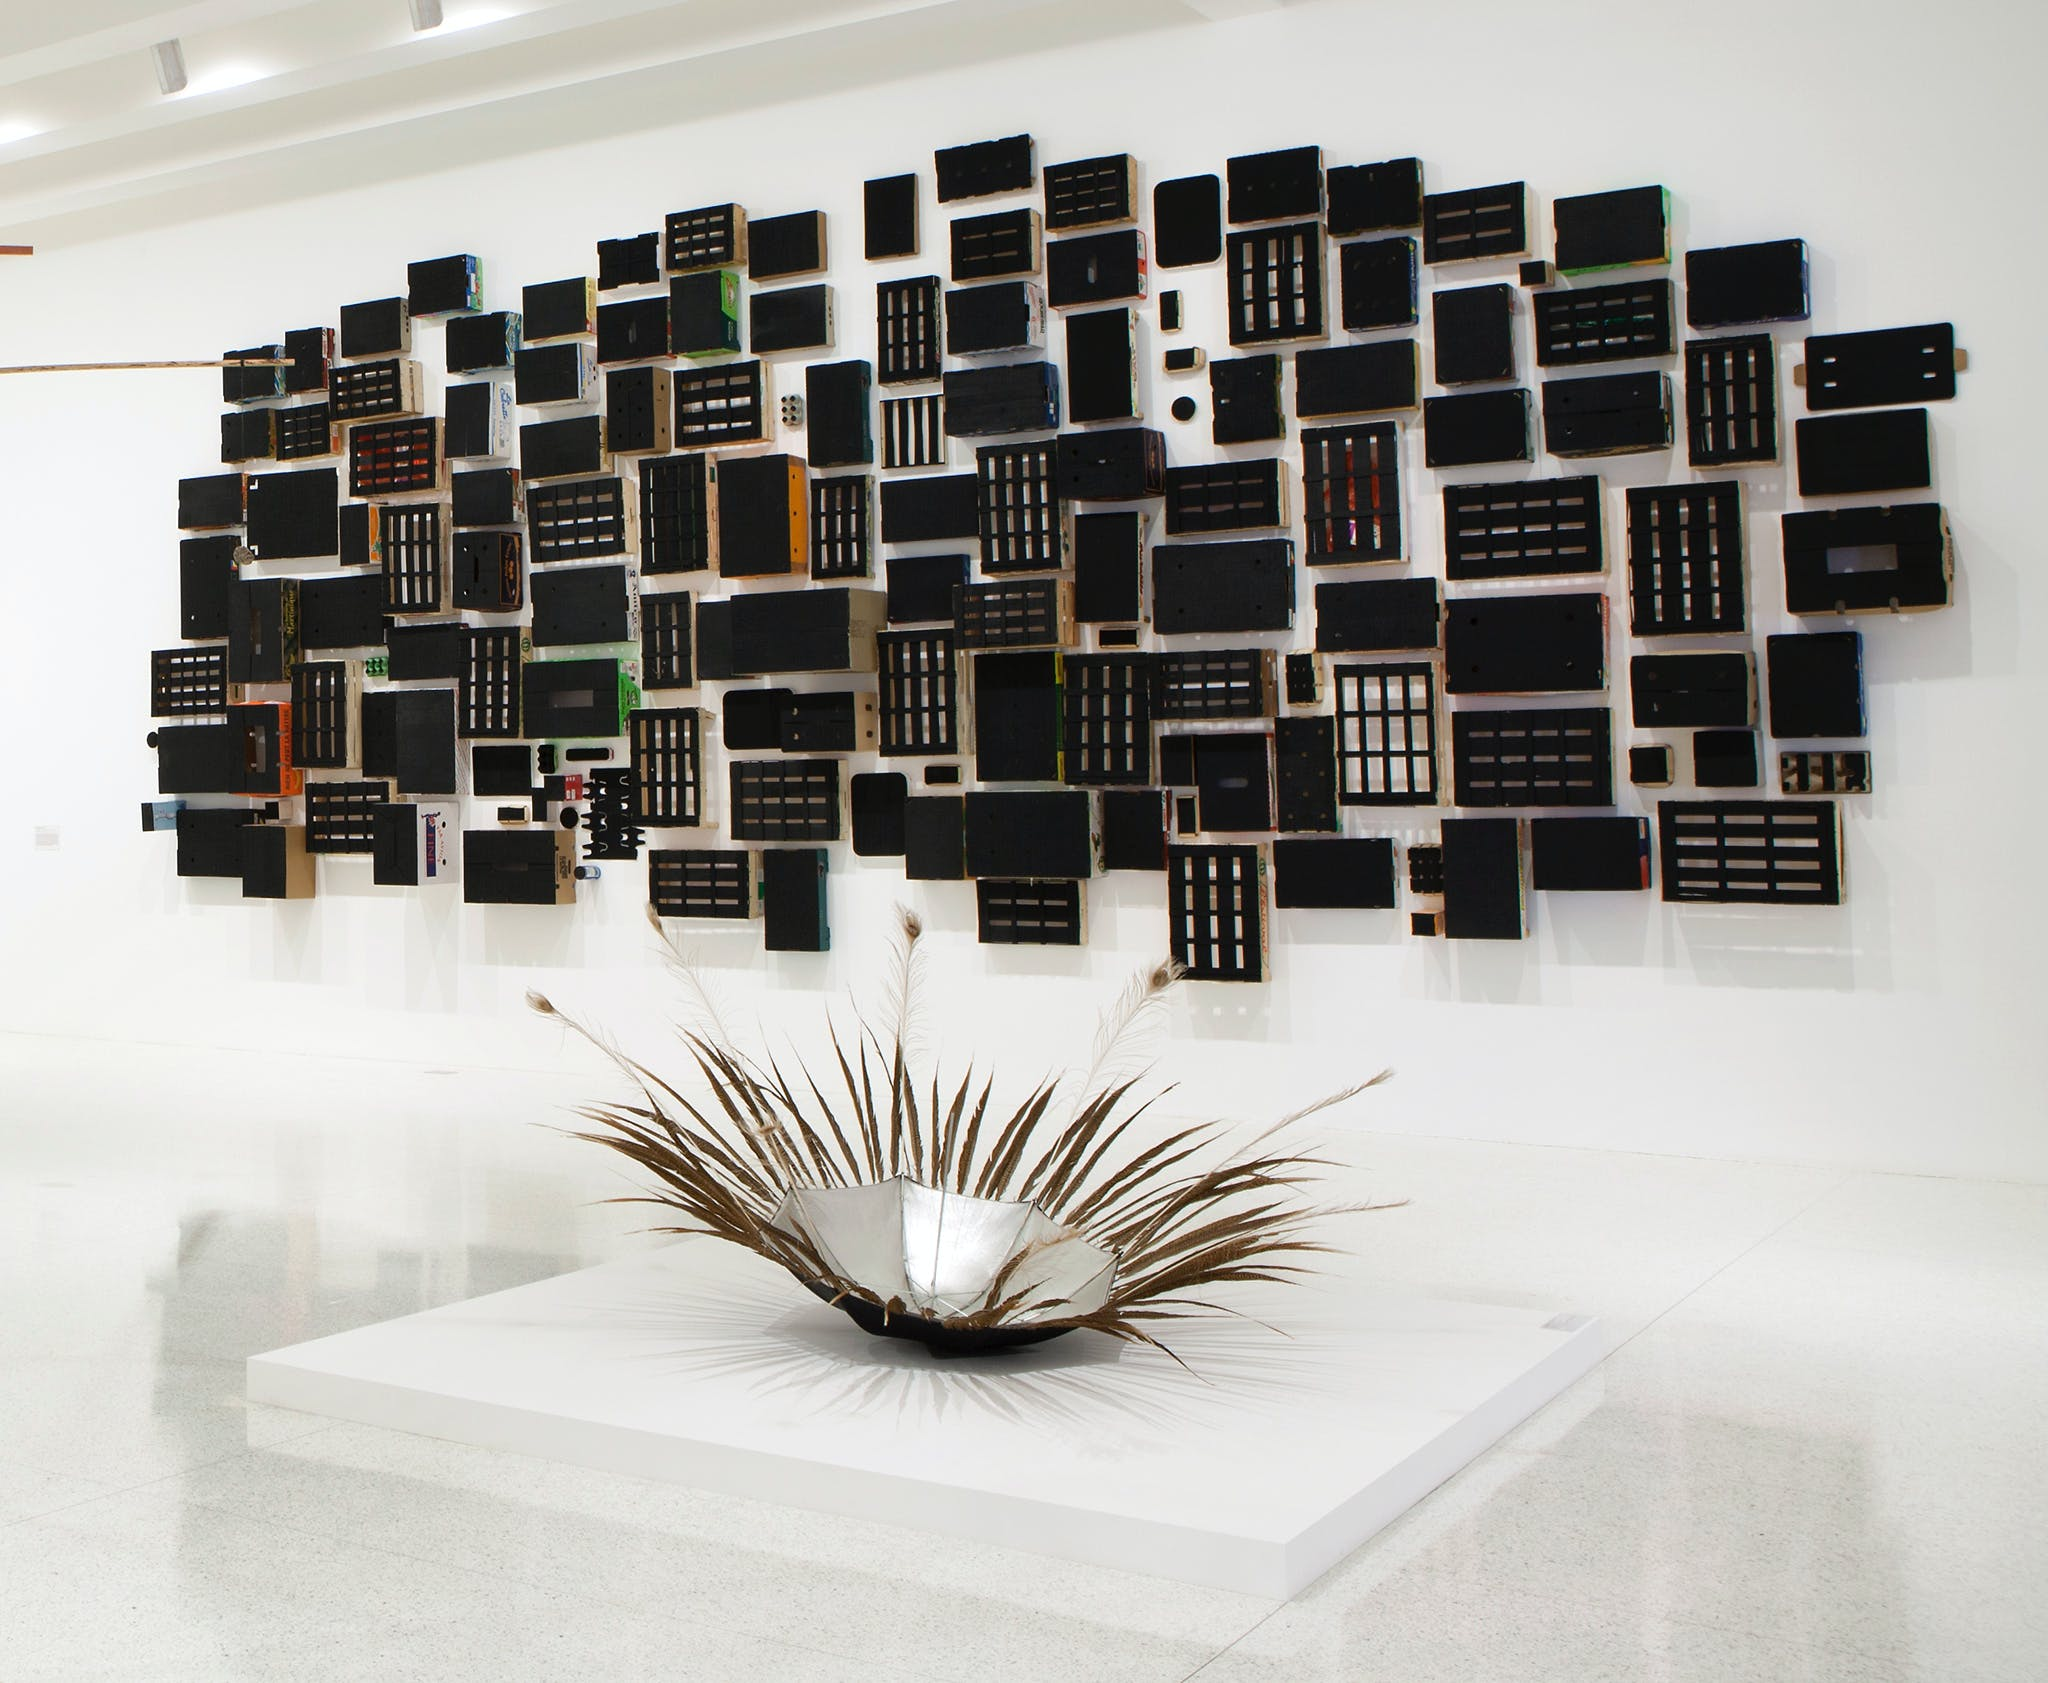 Installation view of the exhibition, Abraham Cruzvillegas: The Autoconstrucción Suites, 2013